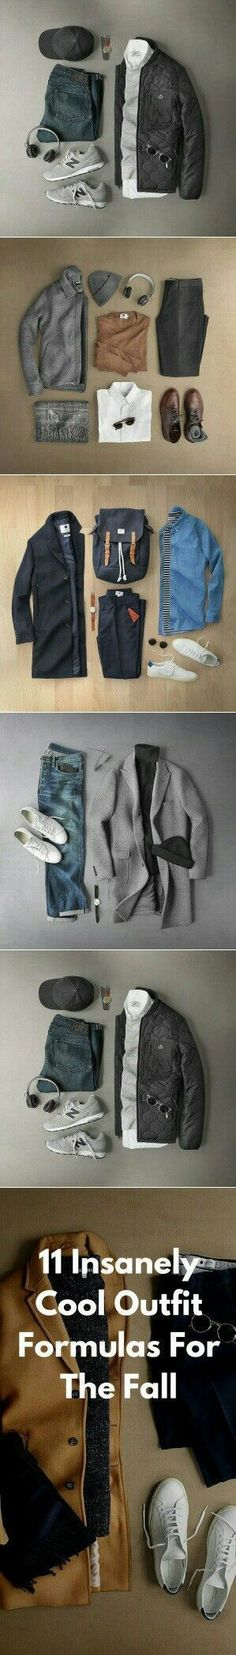 Fall Outfit Grids.